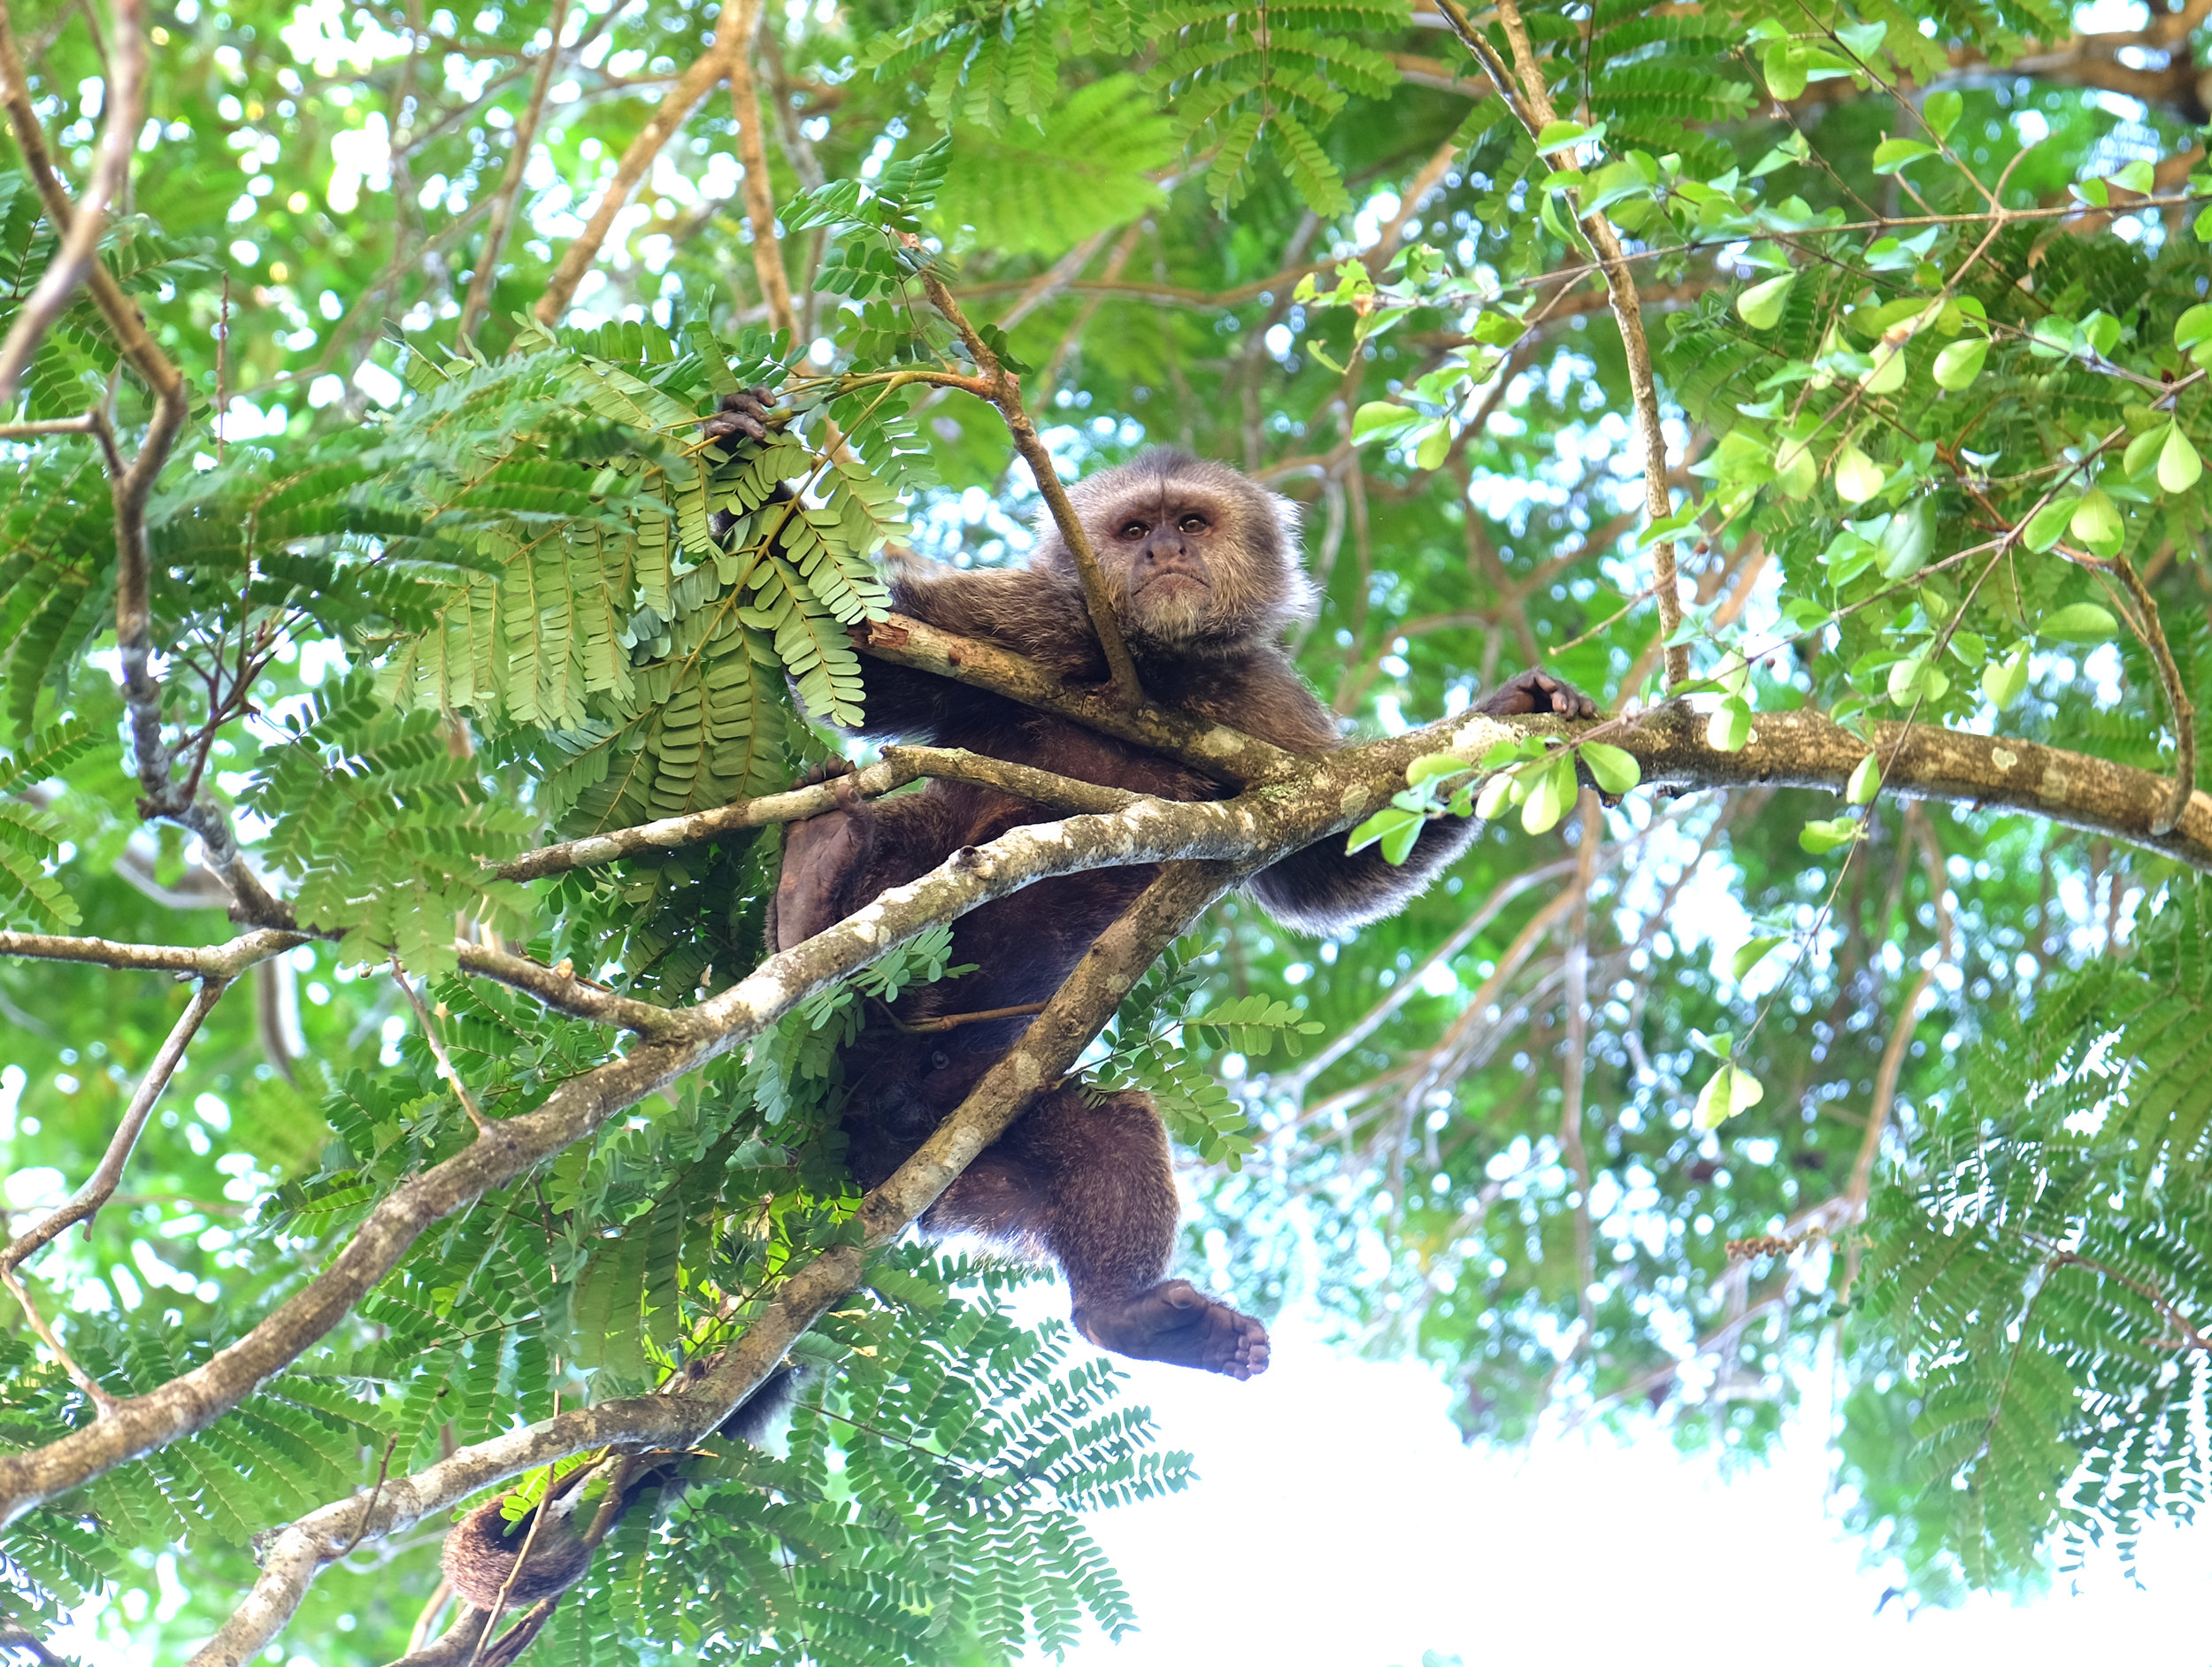 CAPUCHIN MONKEY MANSPREADING IN A TREE